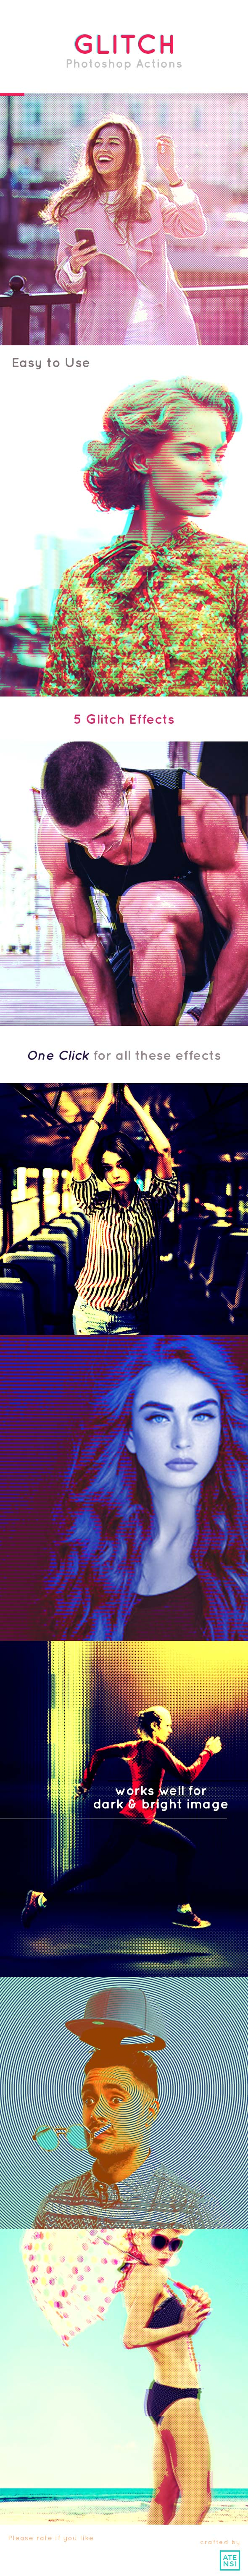 Glitch Actions Photoshop - Photo Effects Actions